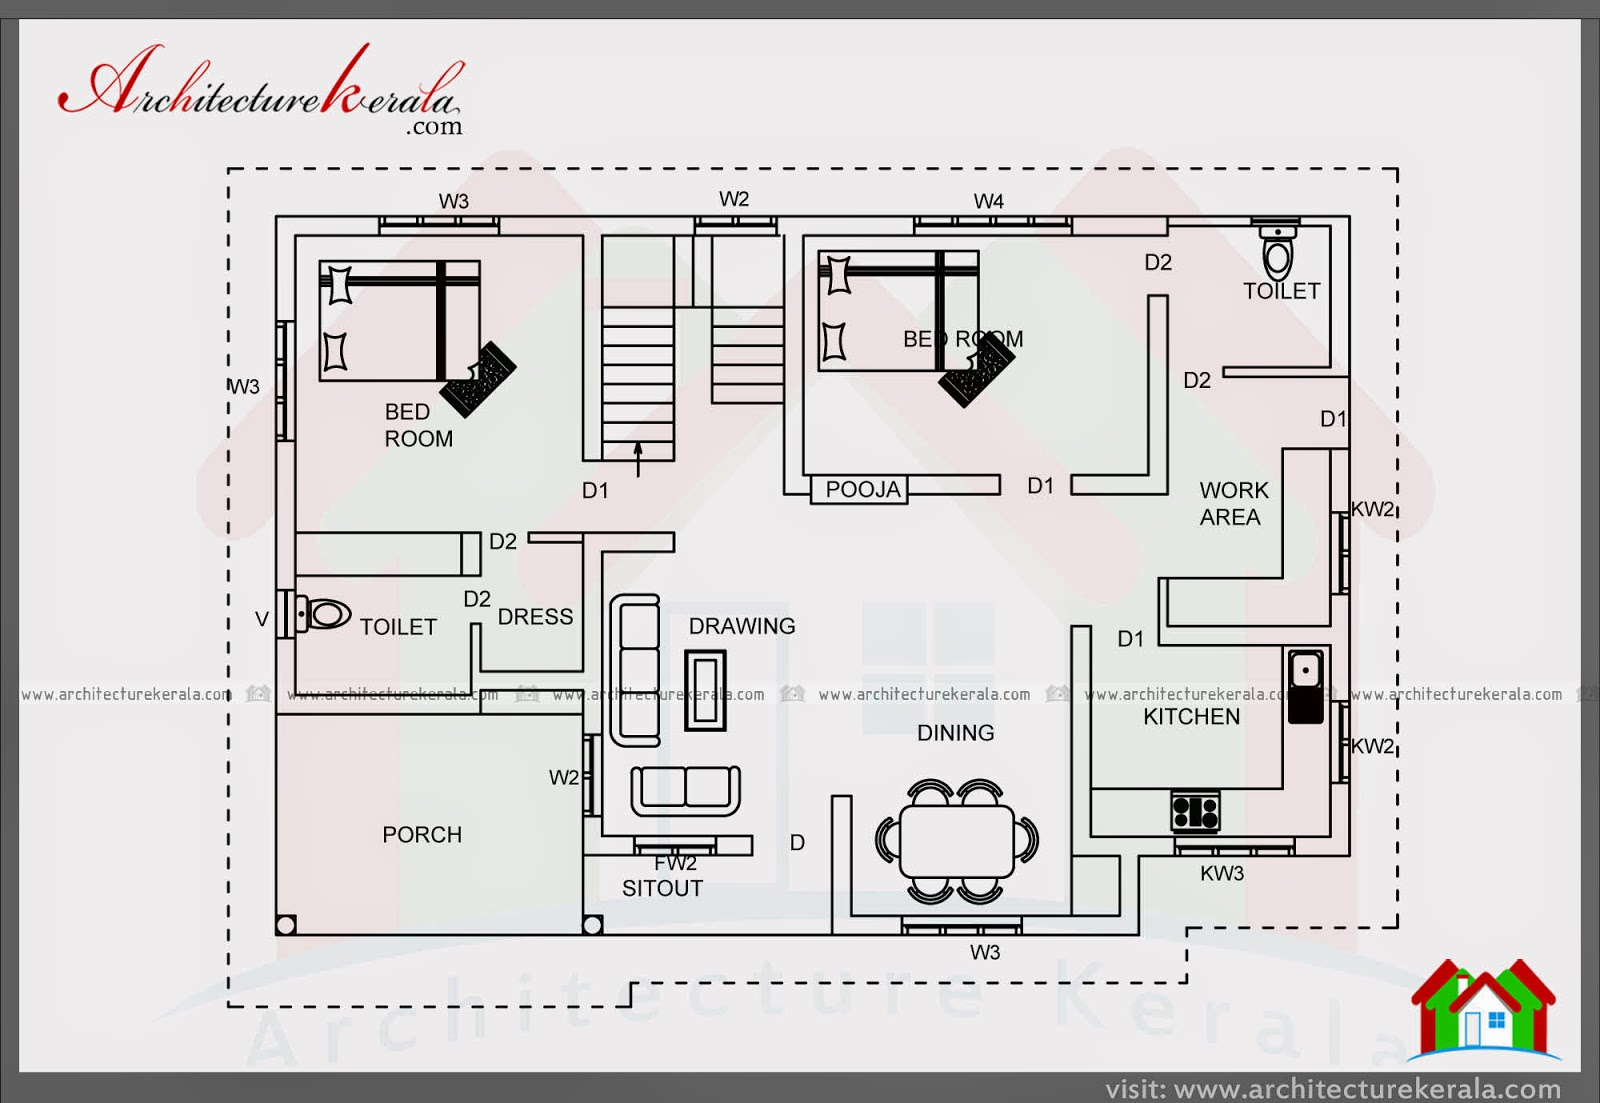 5 bedroom in 2000 sft house plan architecture kerala Ground floor 3 bedroom plans